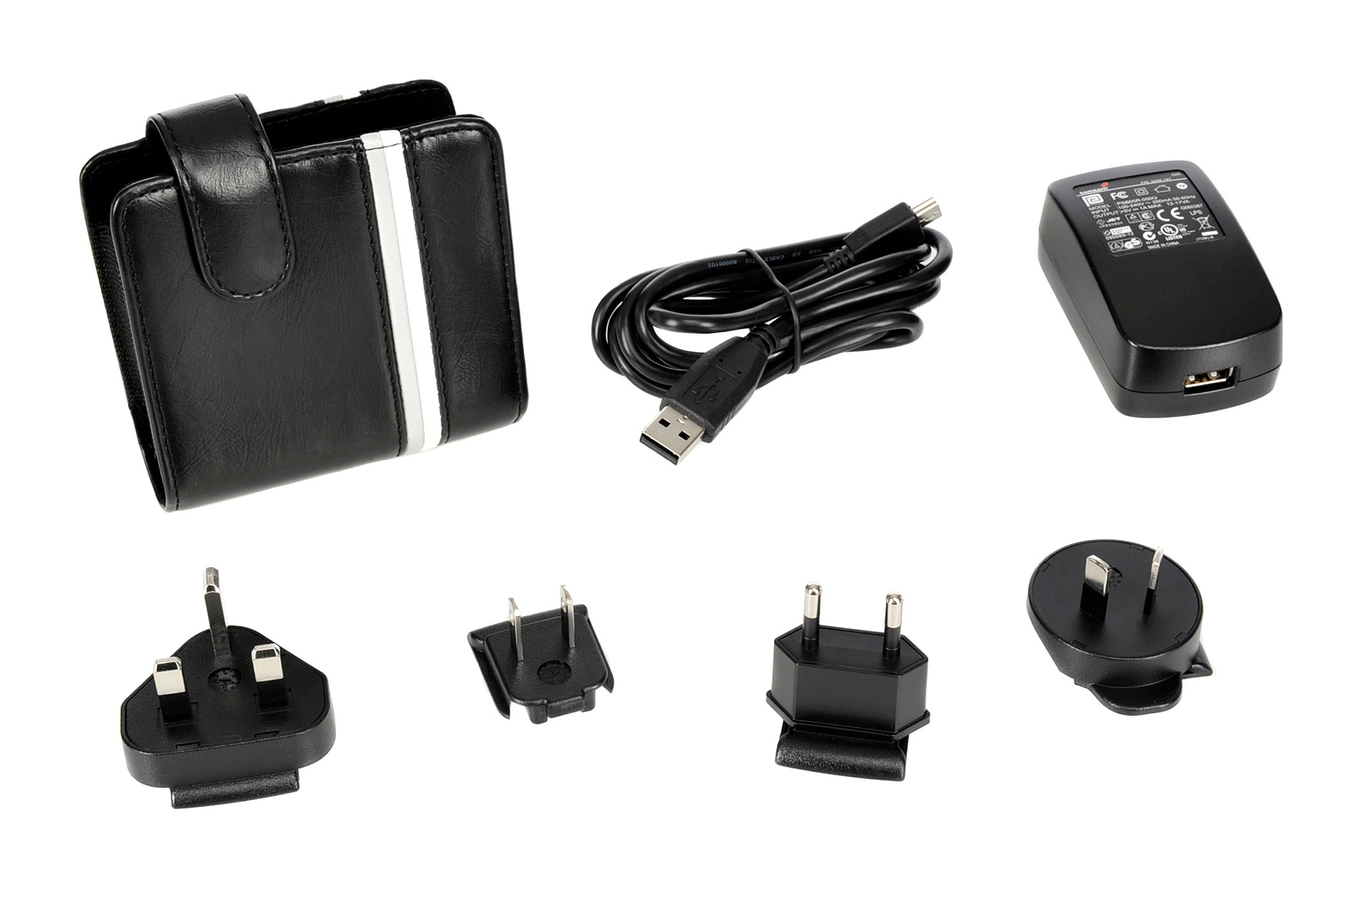 chargeur cable pour gps tomtom travel pack one start travel one start 1227840 darty. Black Bedroom Furniture Sets. Home Design Ideas